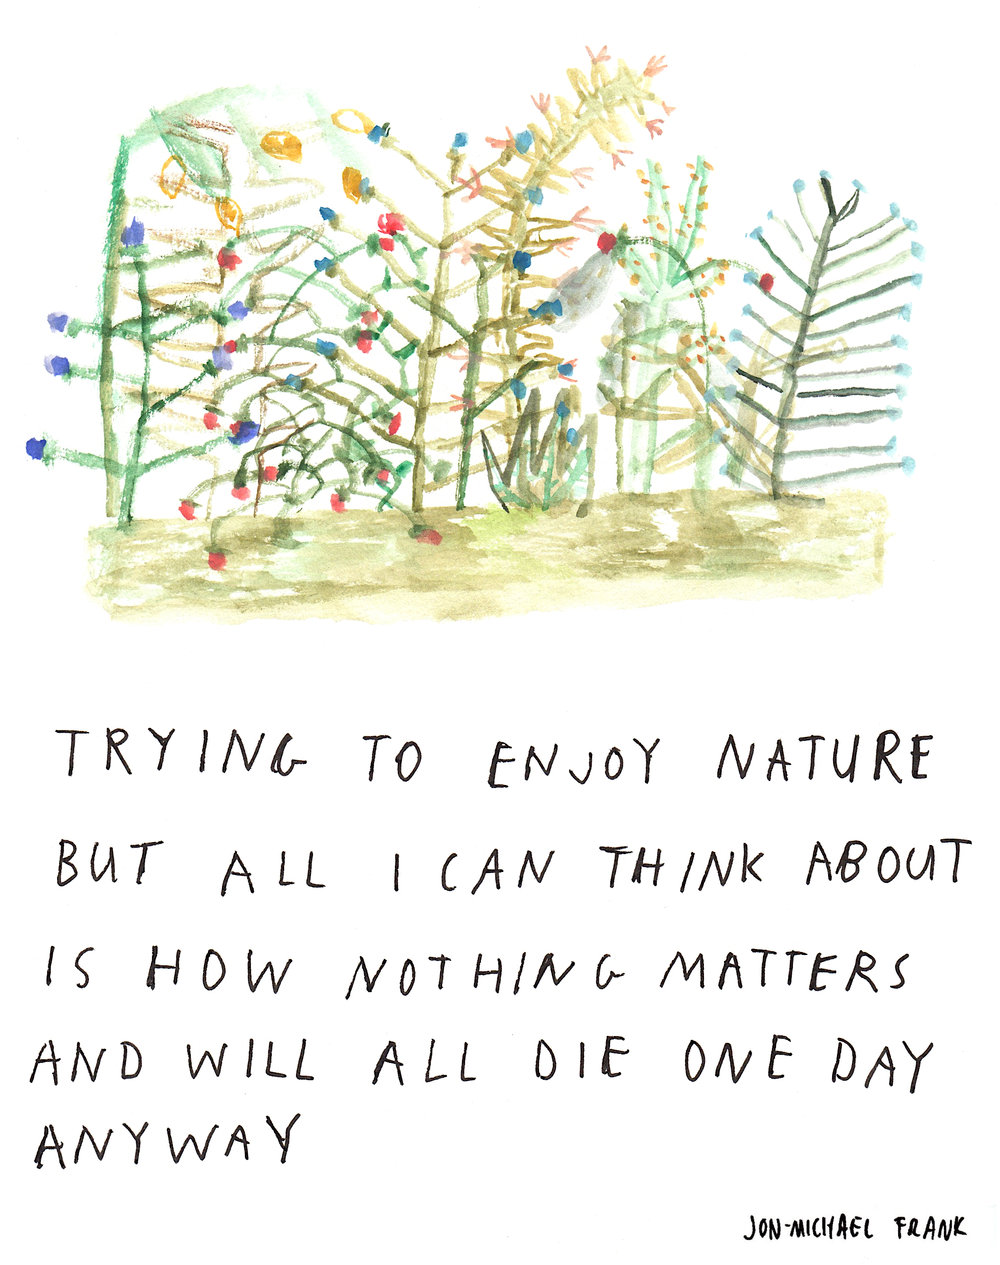 enjoynaturetry.jpg